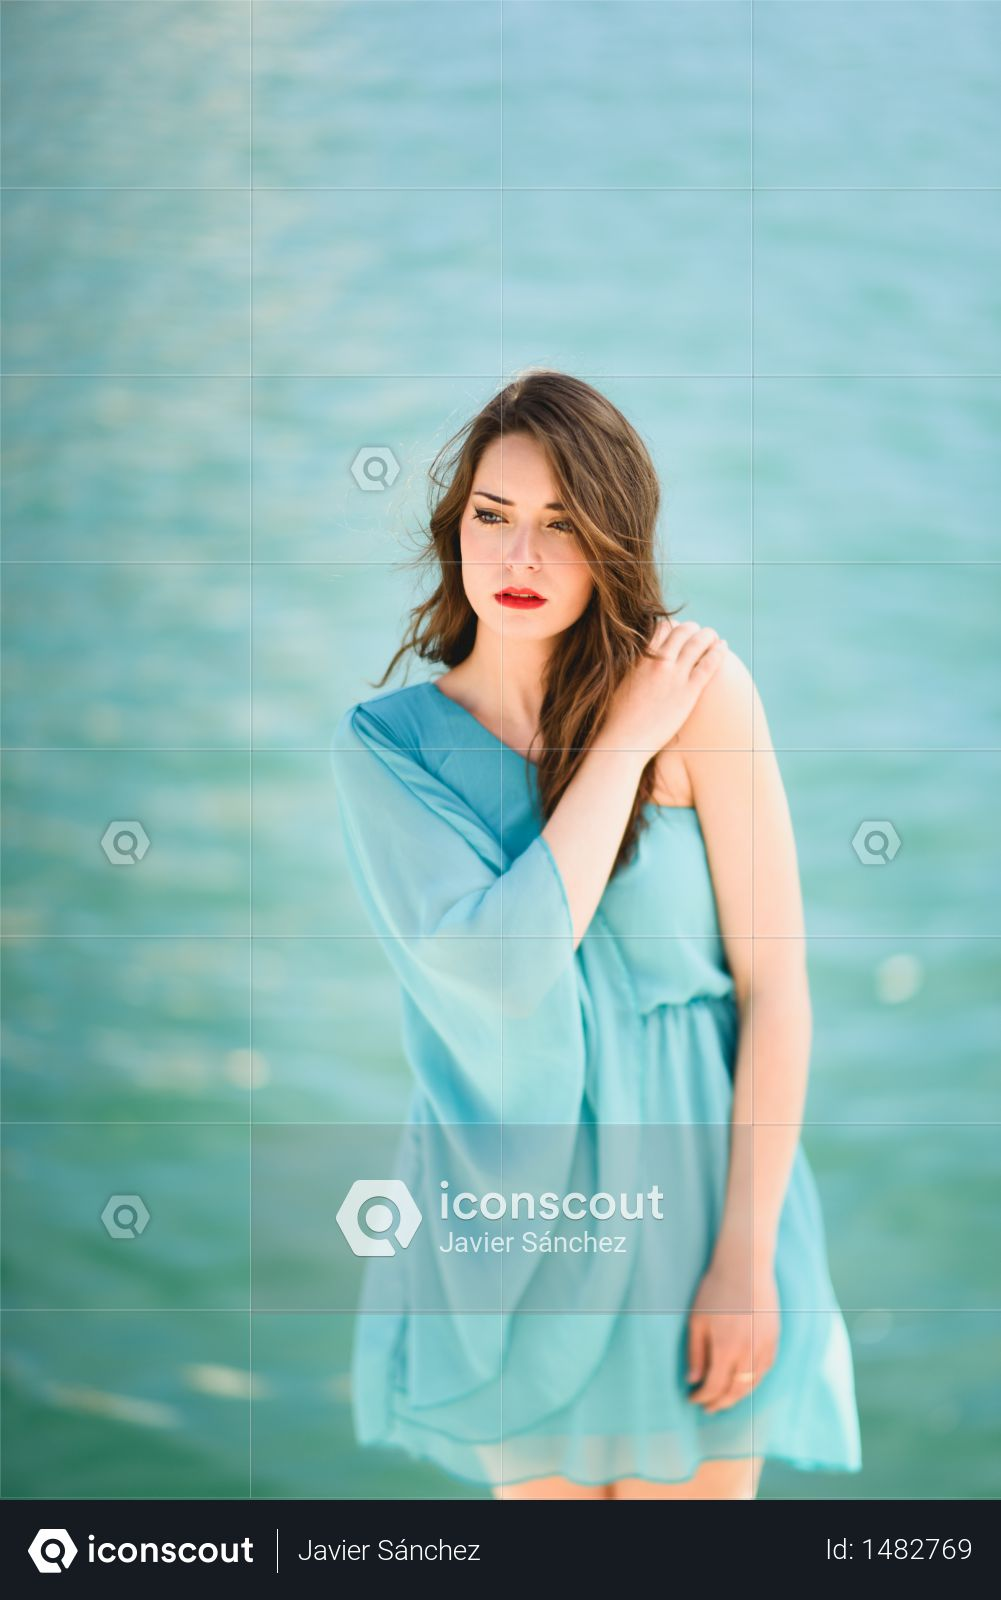 Premium Beautiful Young Woman With Blue Eyes Wearing Blue Dress In The Beach Photo Download In Png Jpg Format